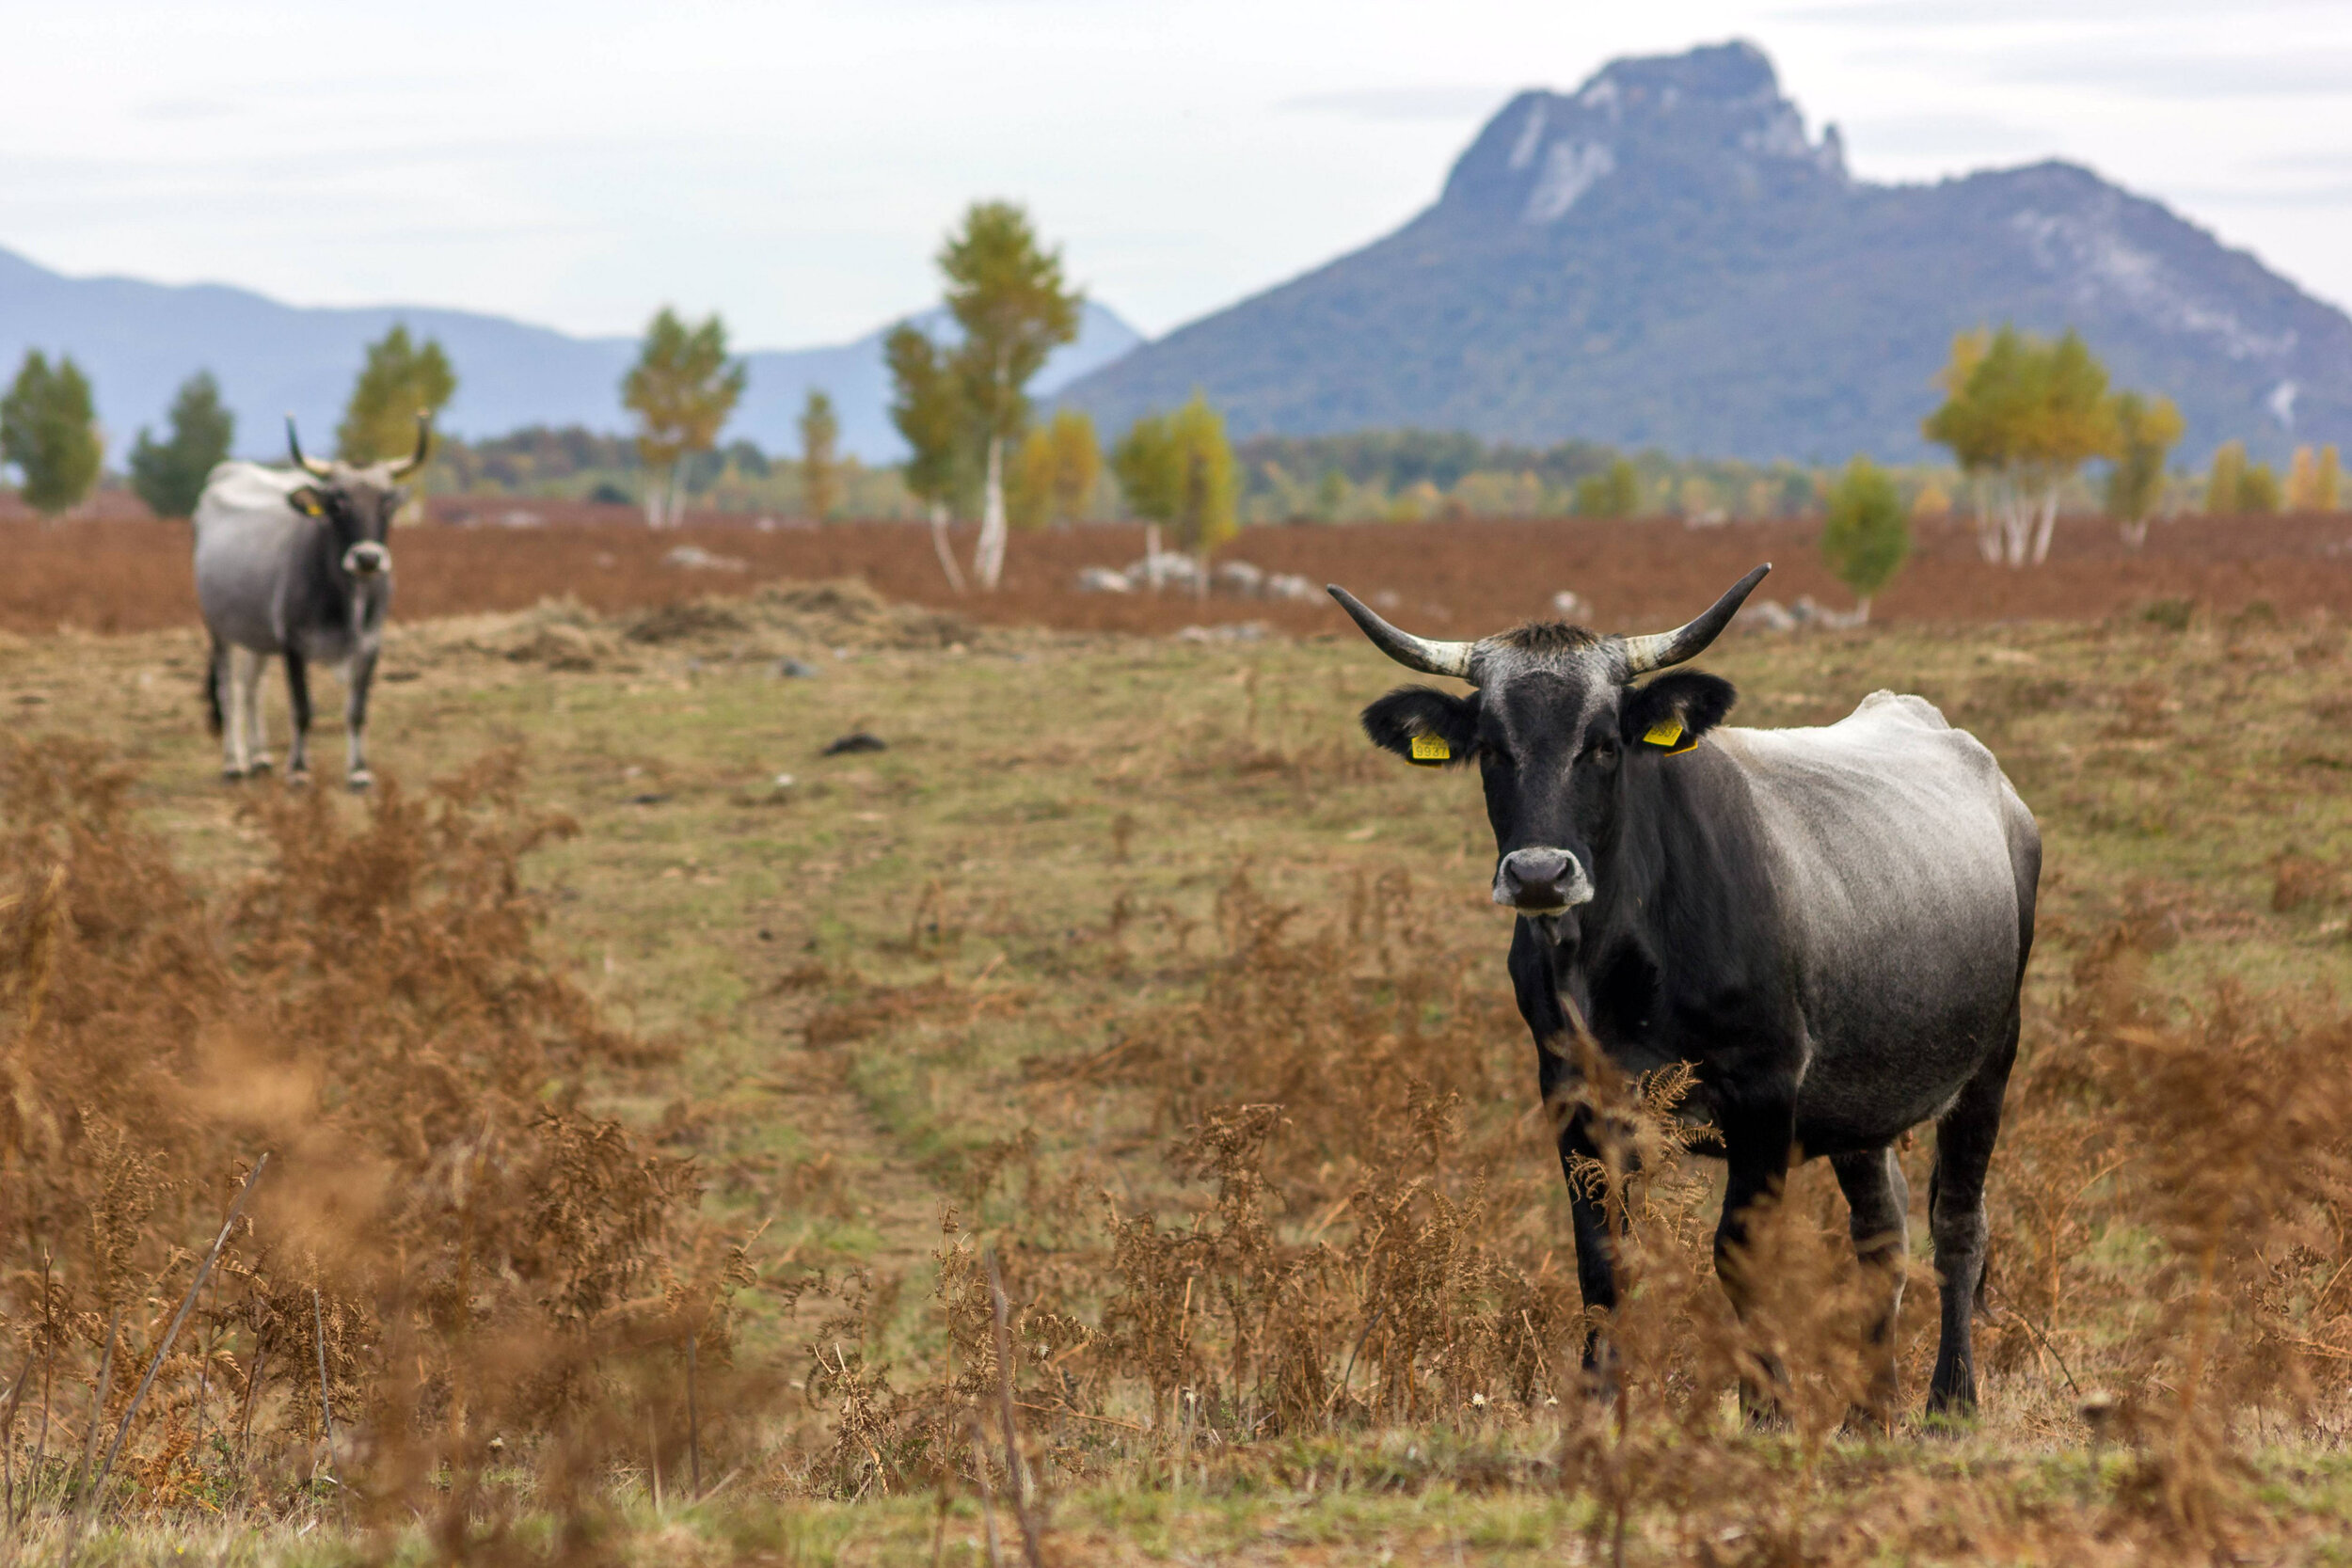 Large herbivores grazing in Lika Plains are already adapted to the harsh weather conditions of Velebit Mountains.  Photo credit: Nino Salkić/Rewilding Velebit.